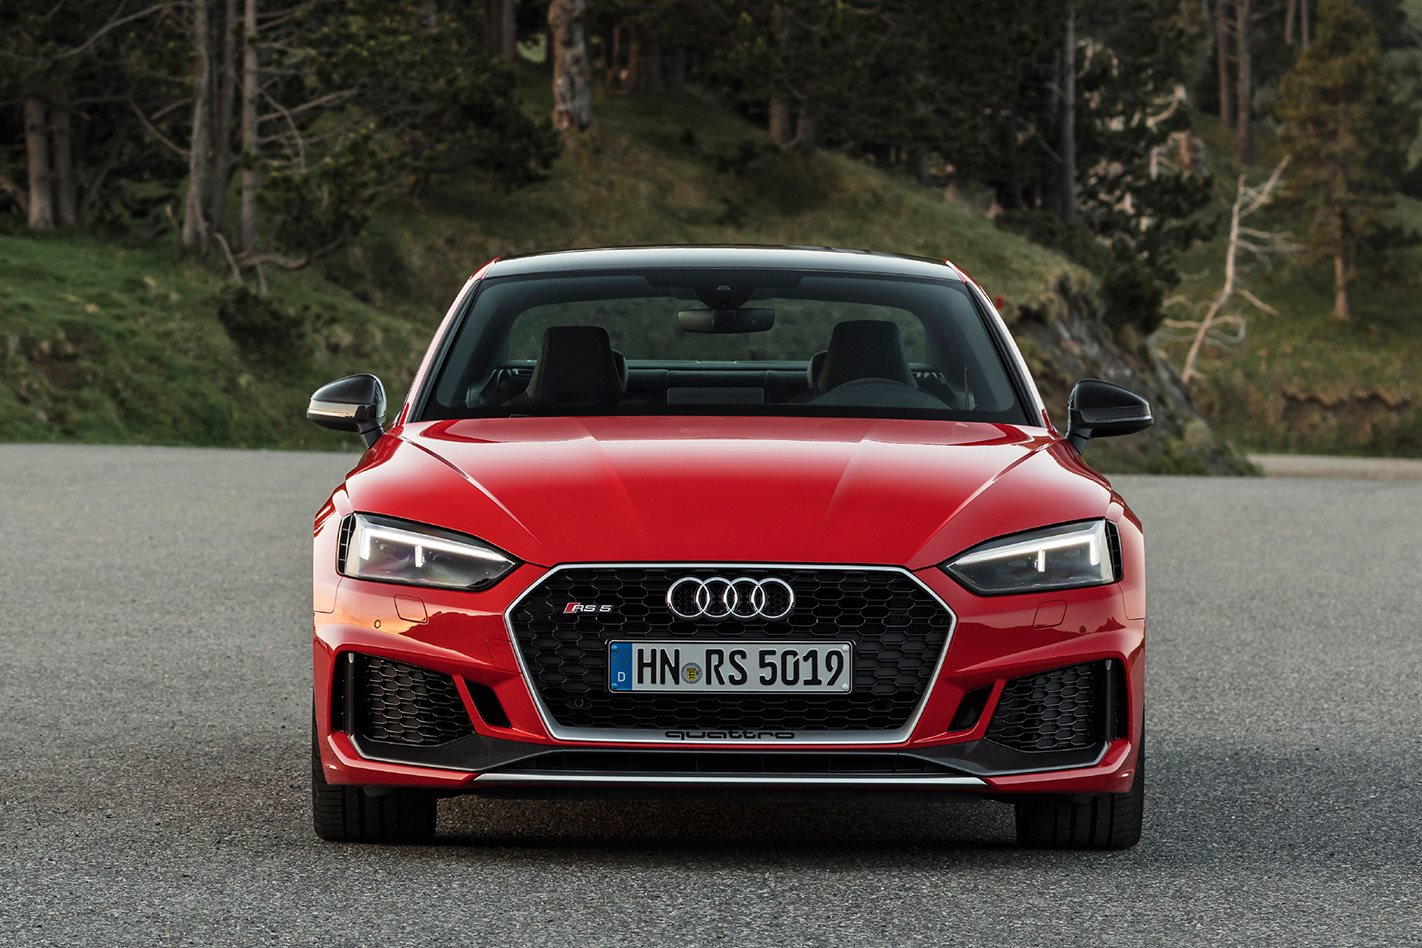 2017 Audi RS5 coupe review